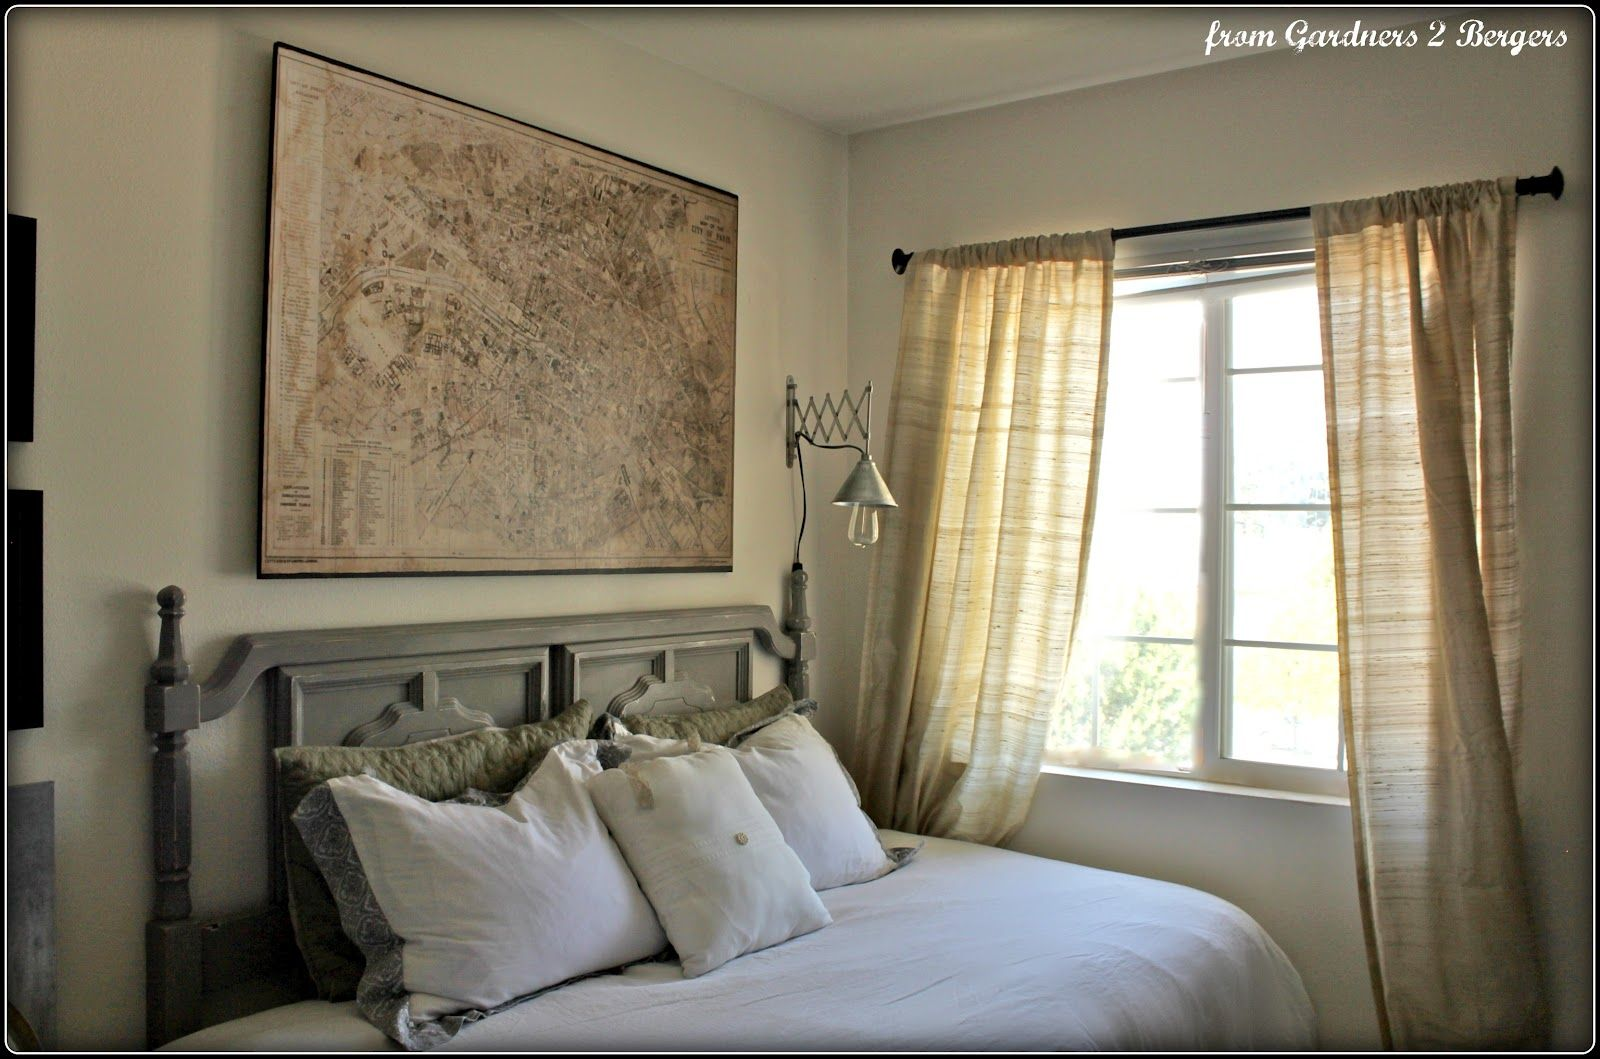 3 window bedroom ideas   home tour   bed frames industrial style lighting and